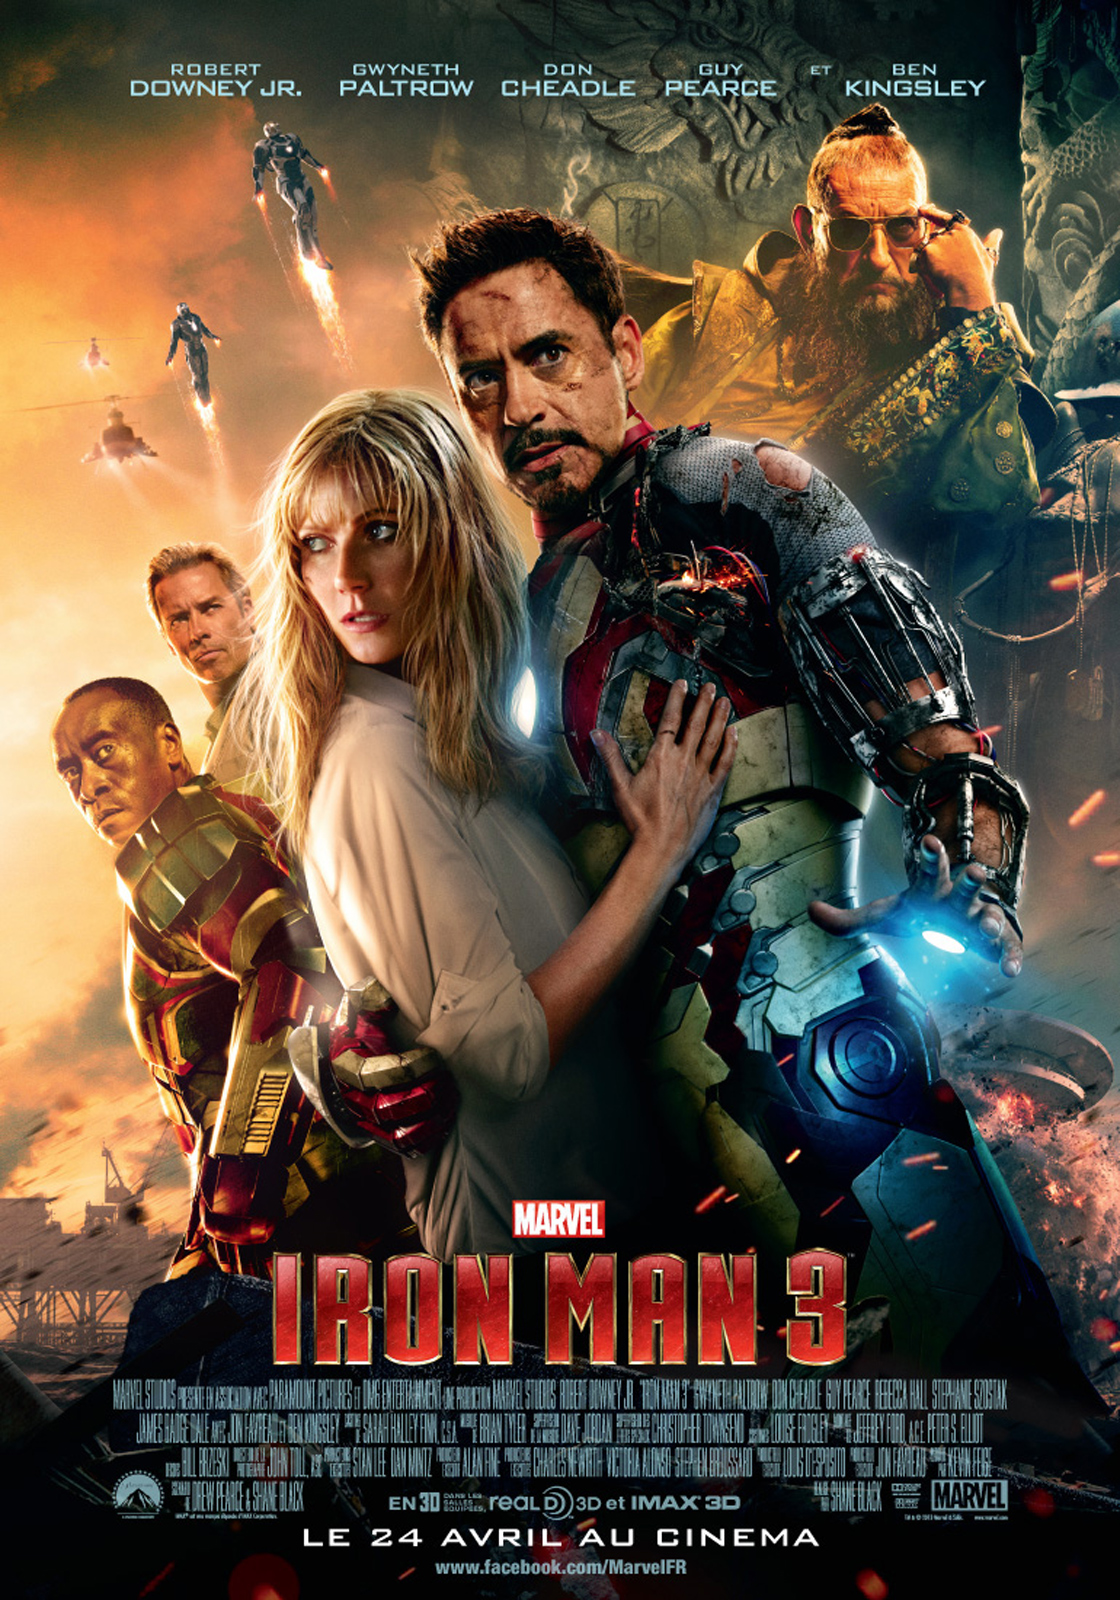 [Multi] Iron Man III 2013 TRUEFRENCH PROPER TS XViD